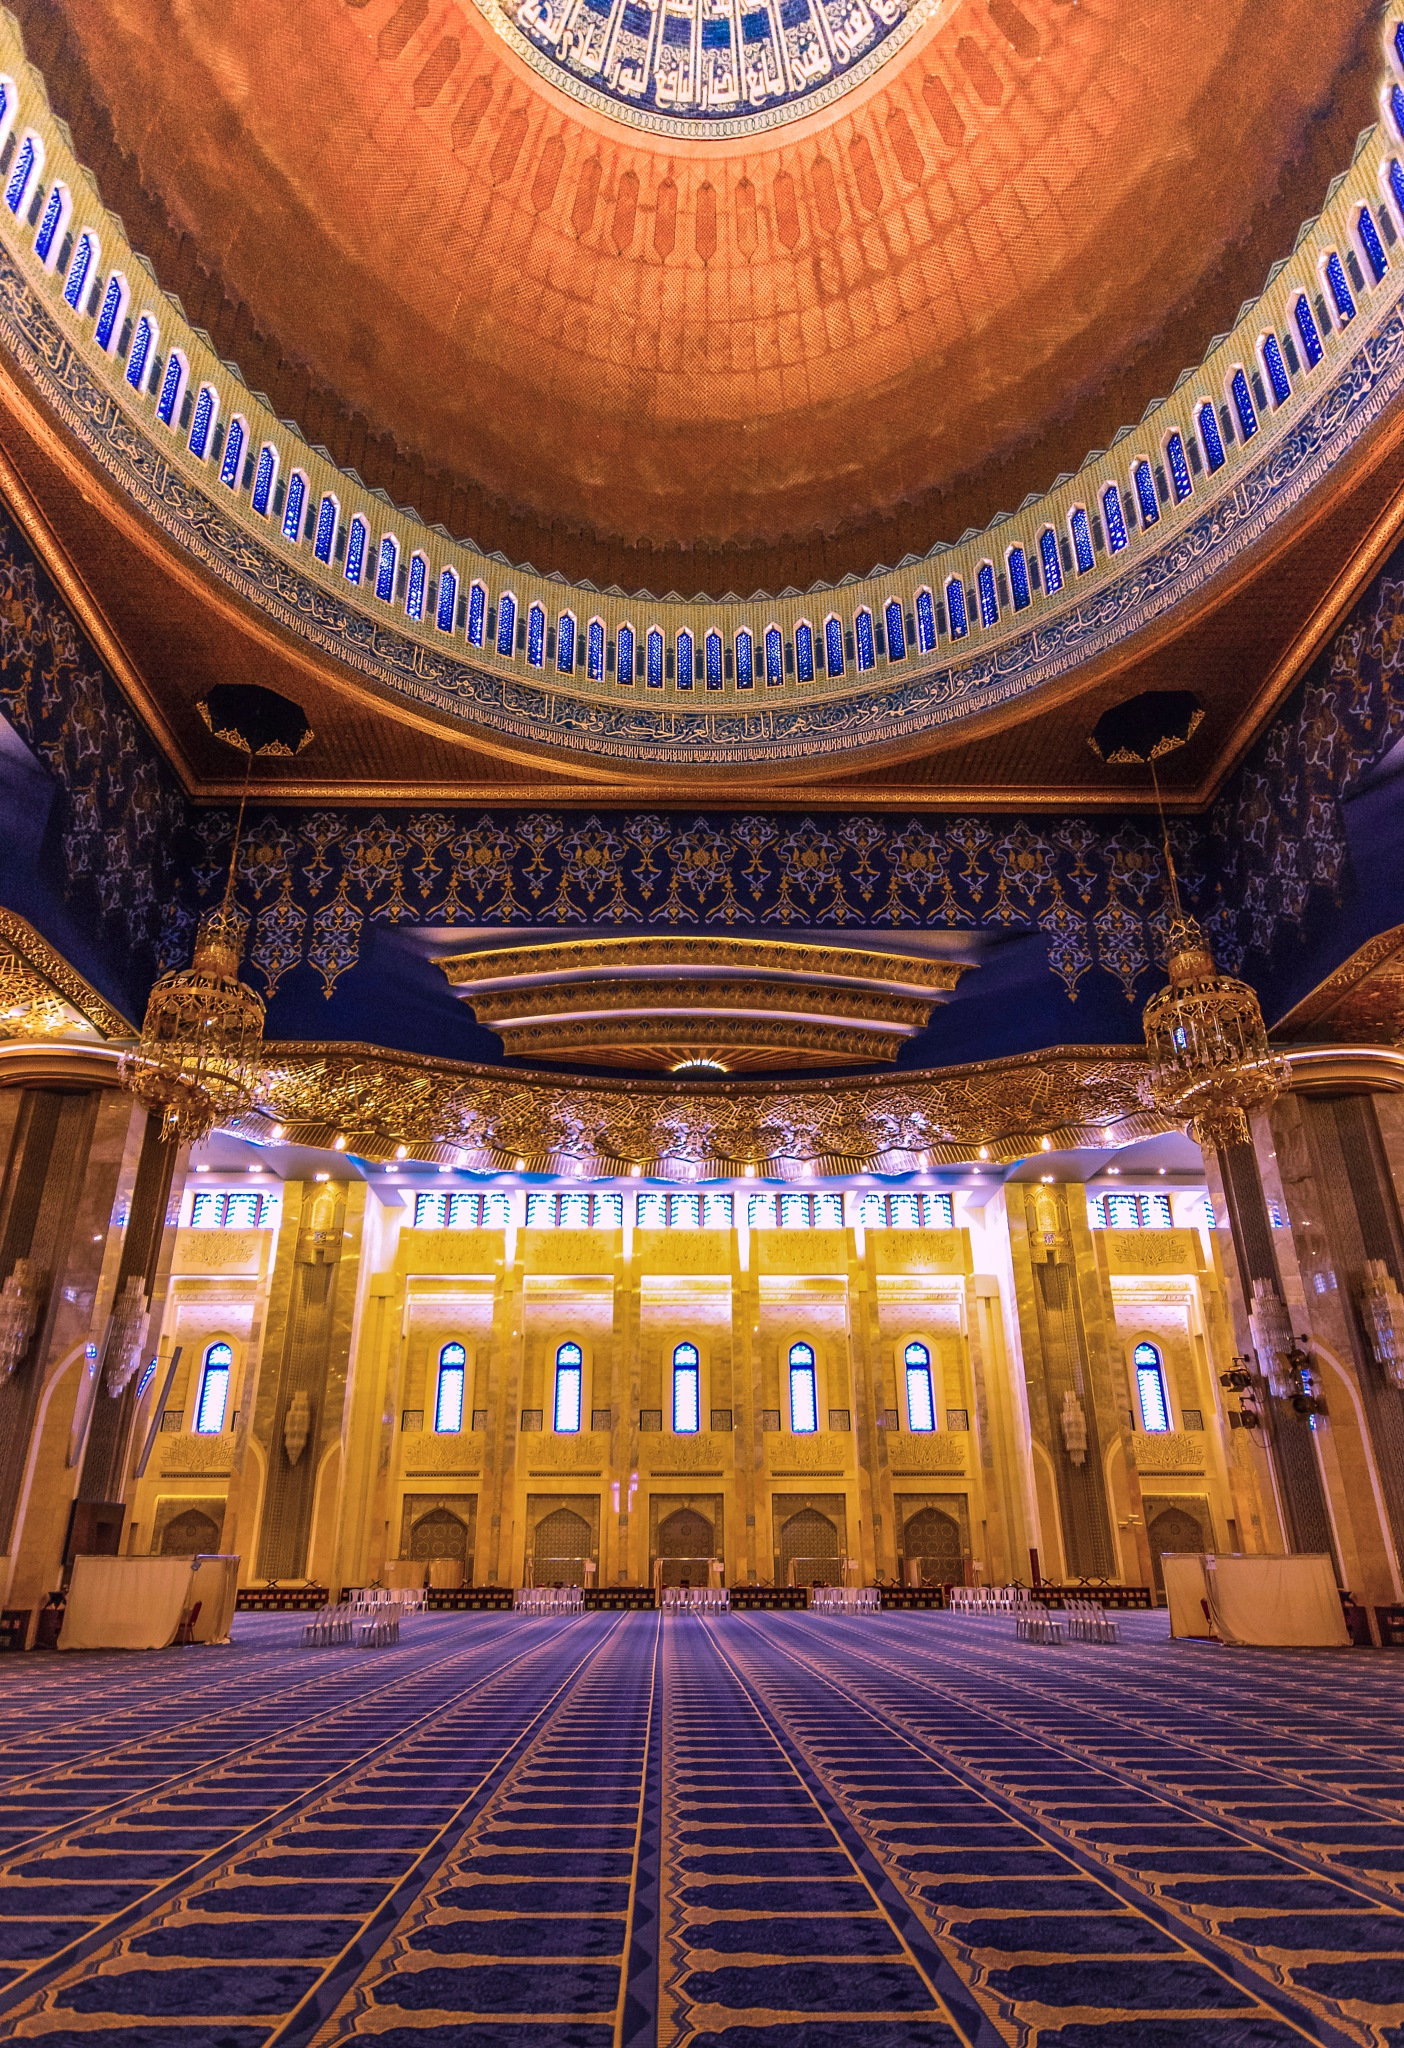 The grand mosque by Ahmed Thabet